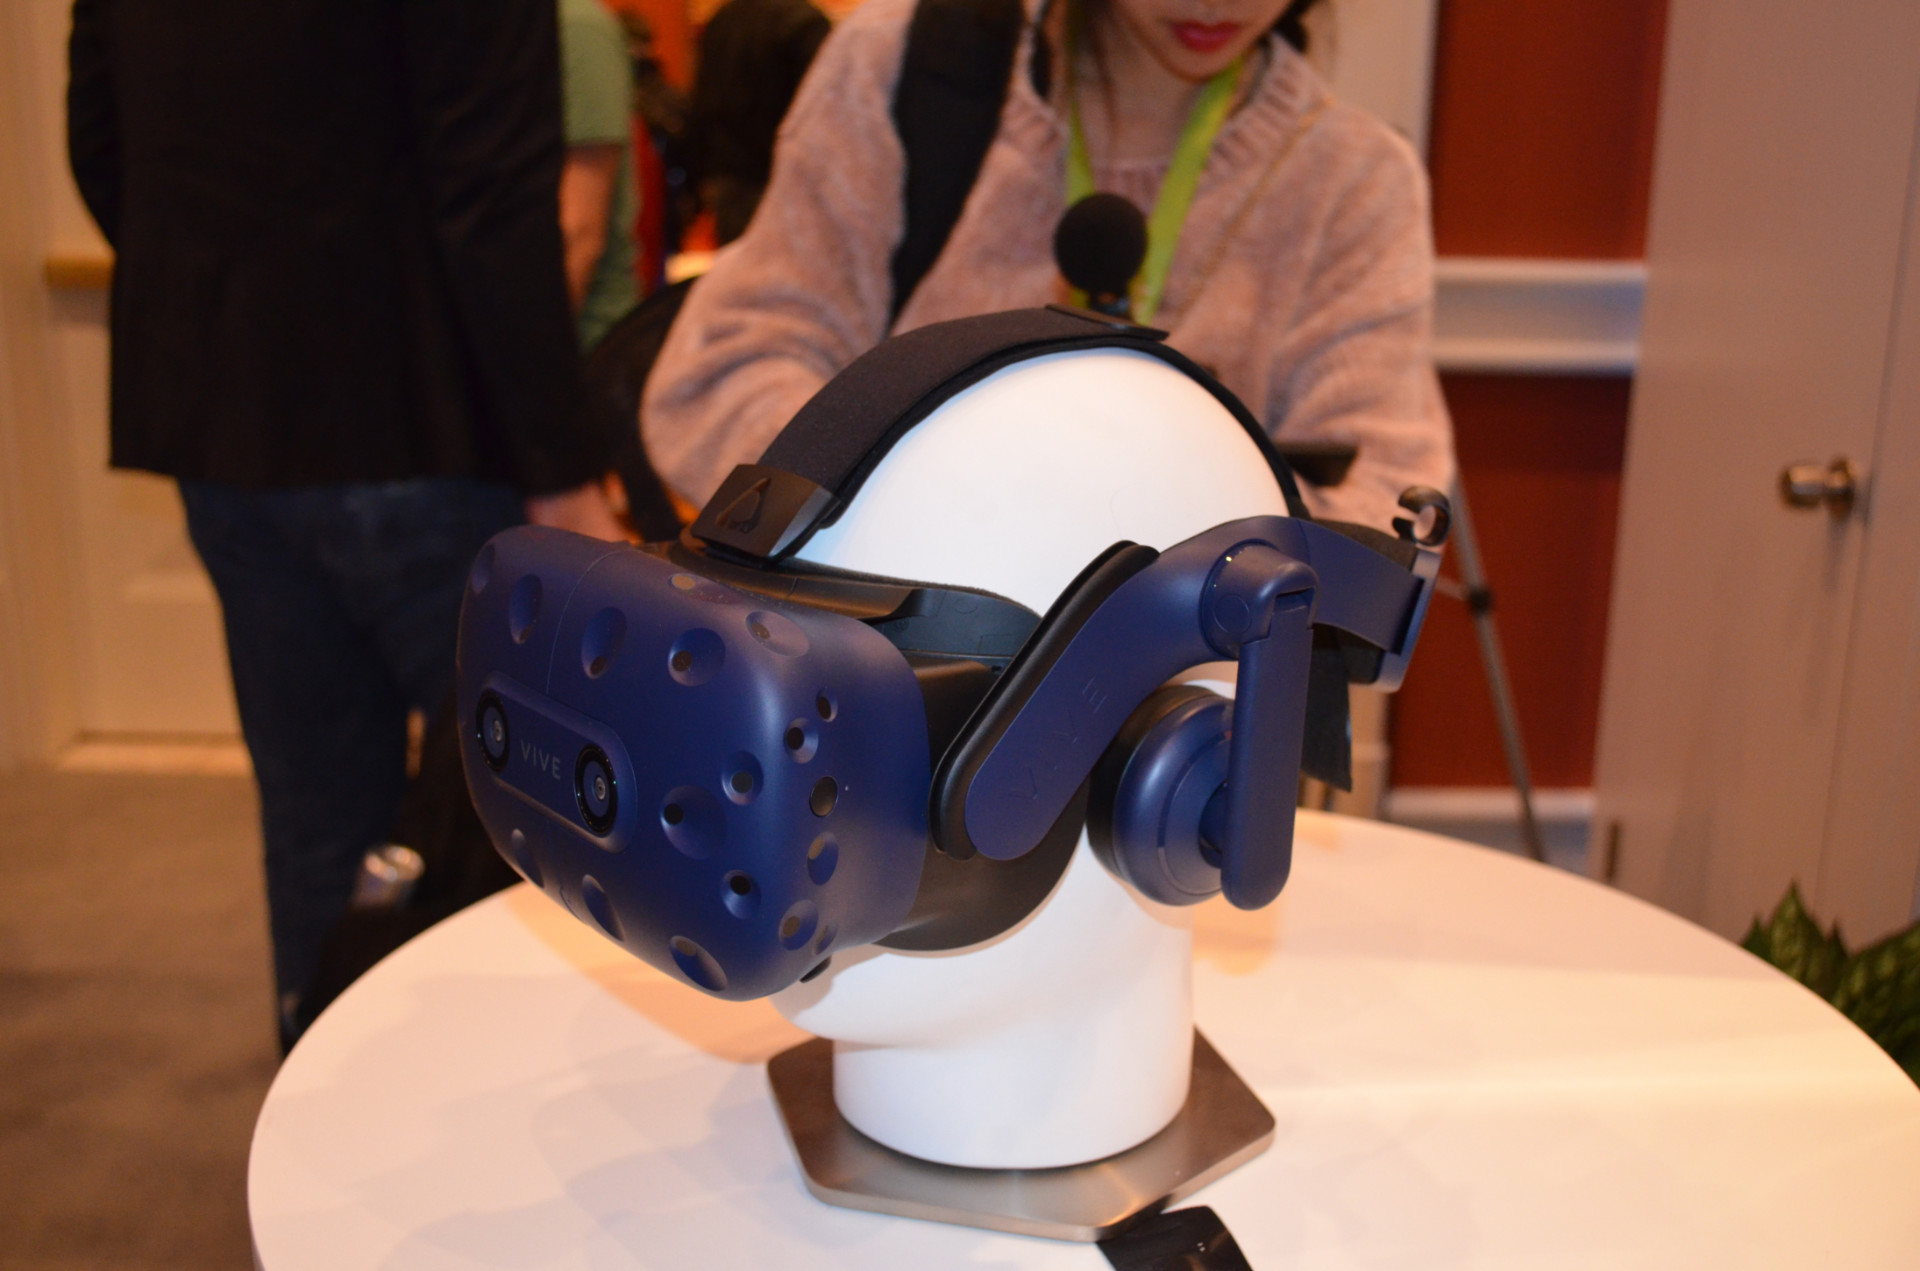 184b9d235a95 CES 2018  First Look  HTC Vive Pro - The New Vive on the Block